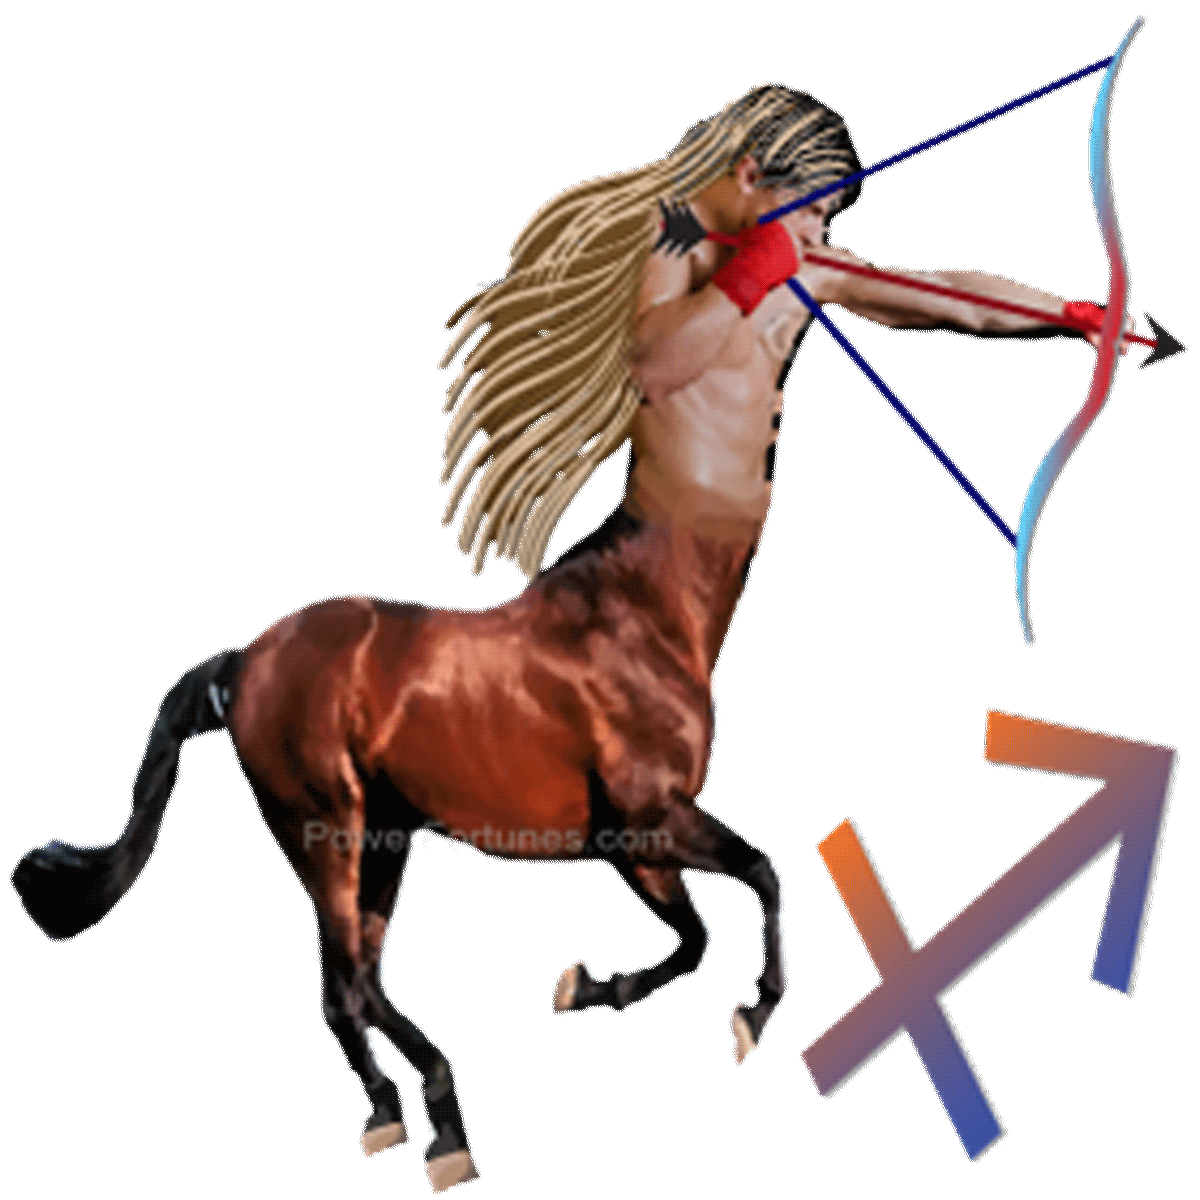 yesterdays predictions, Sagittarius